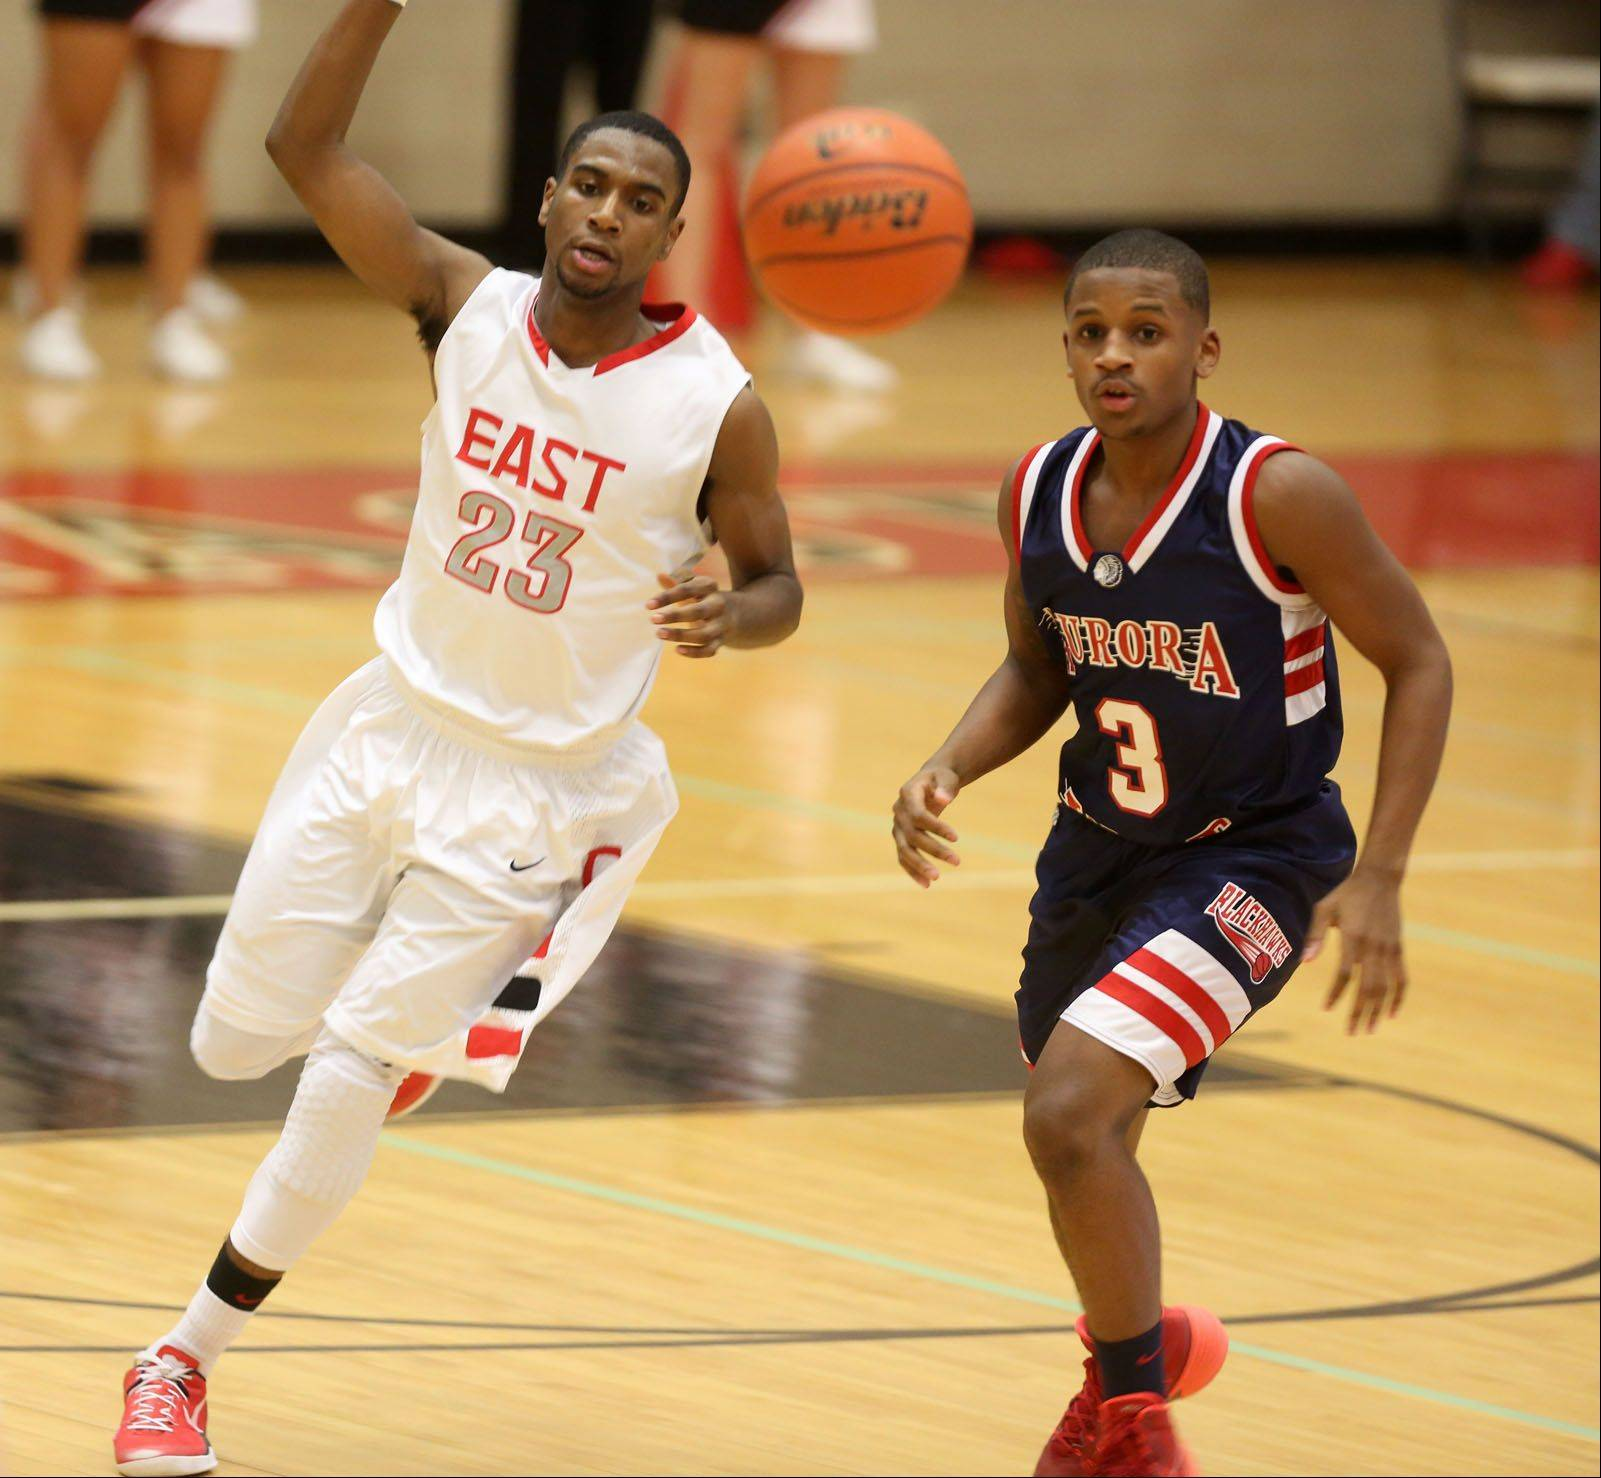 Glenbard East's Jaron Hall moves the ball upcourt against West Aurora.